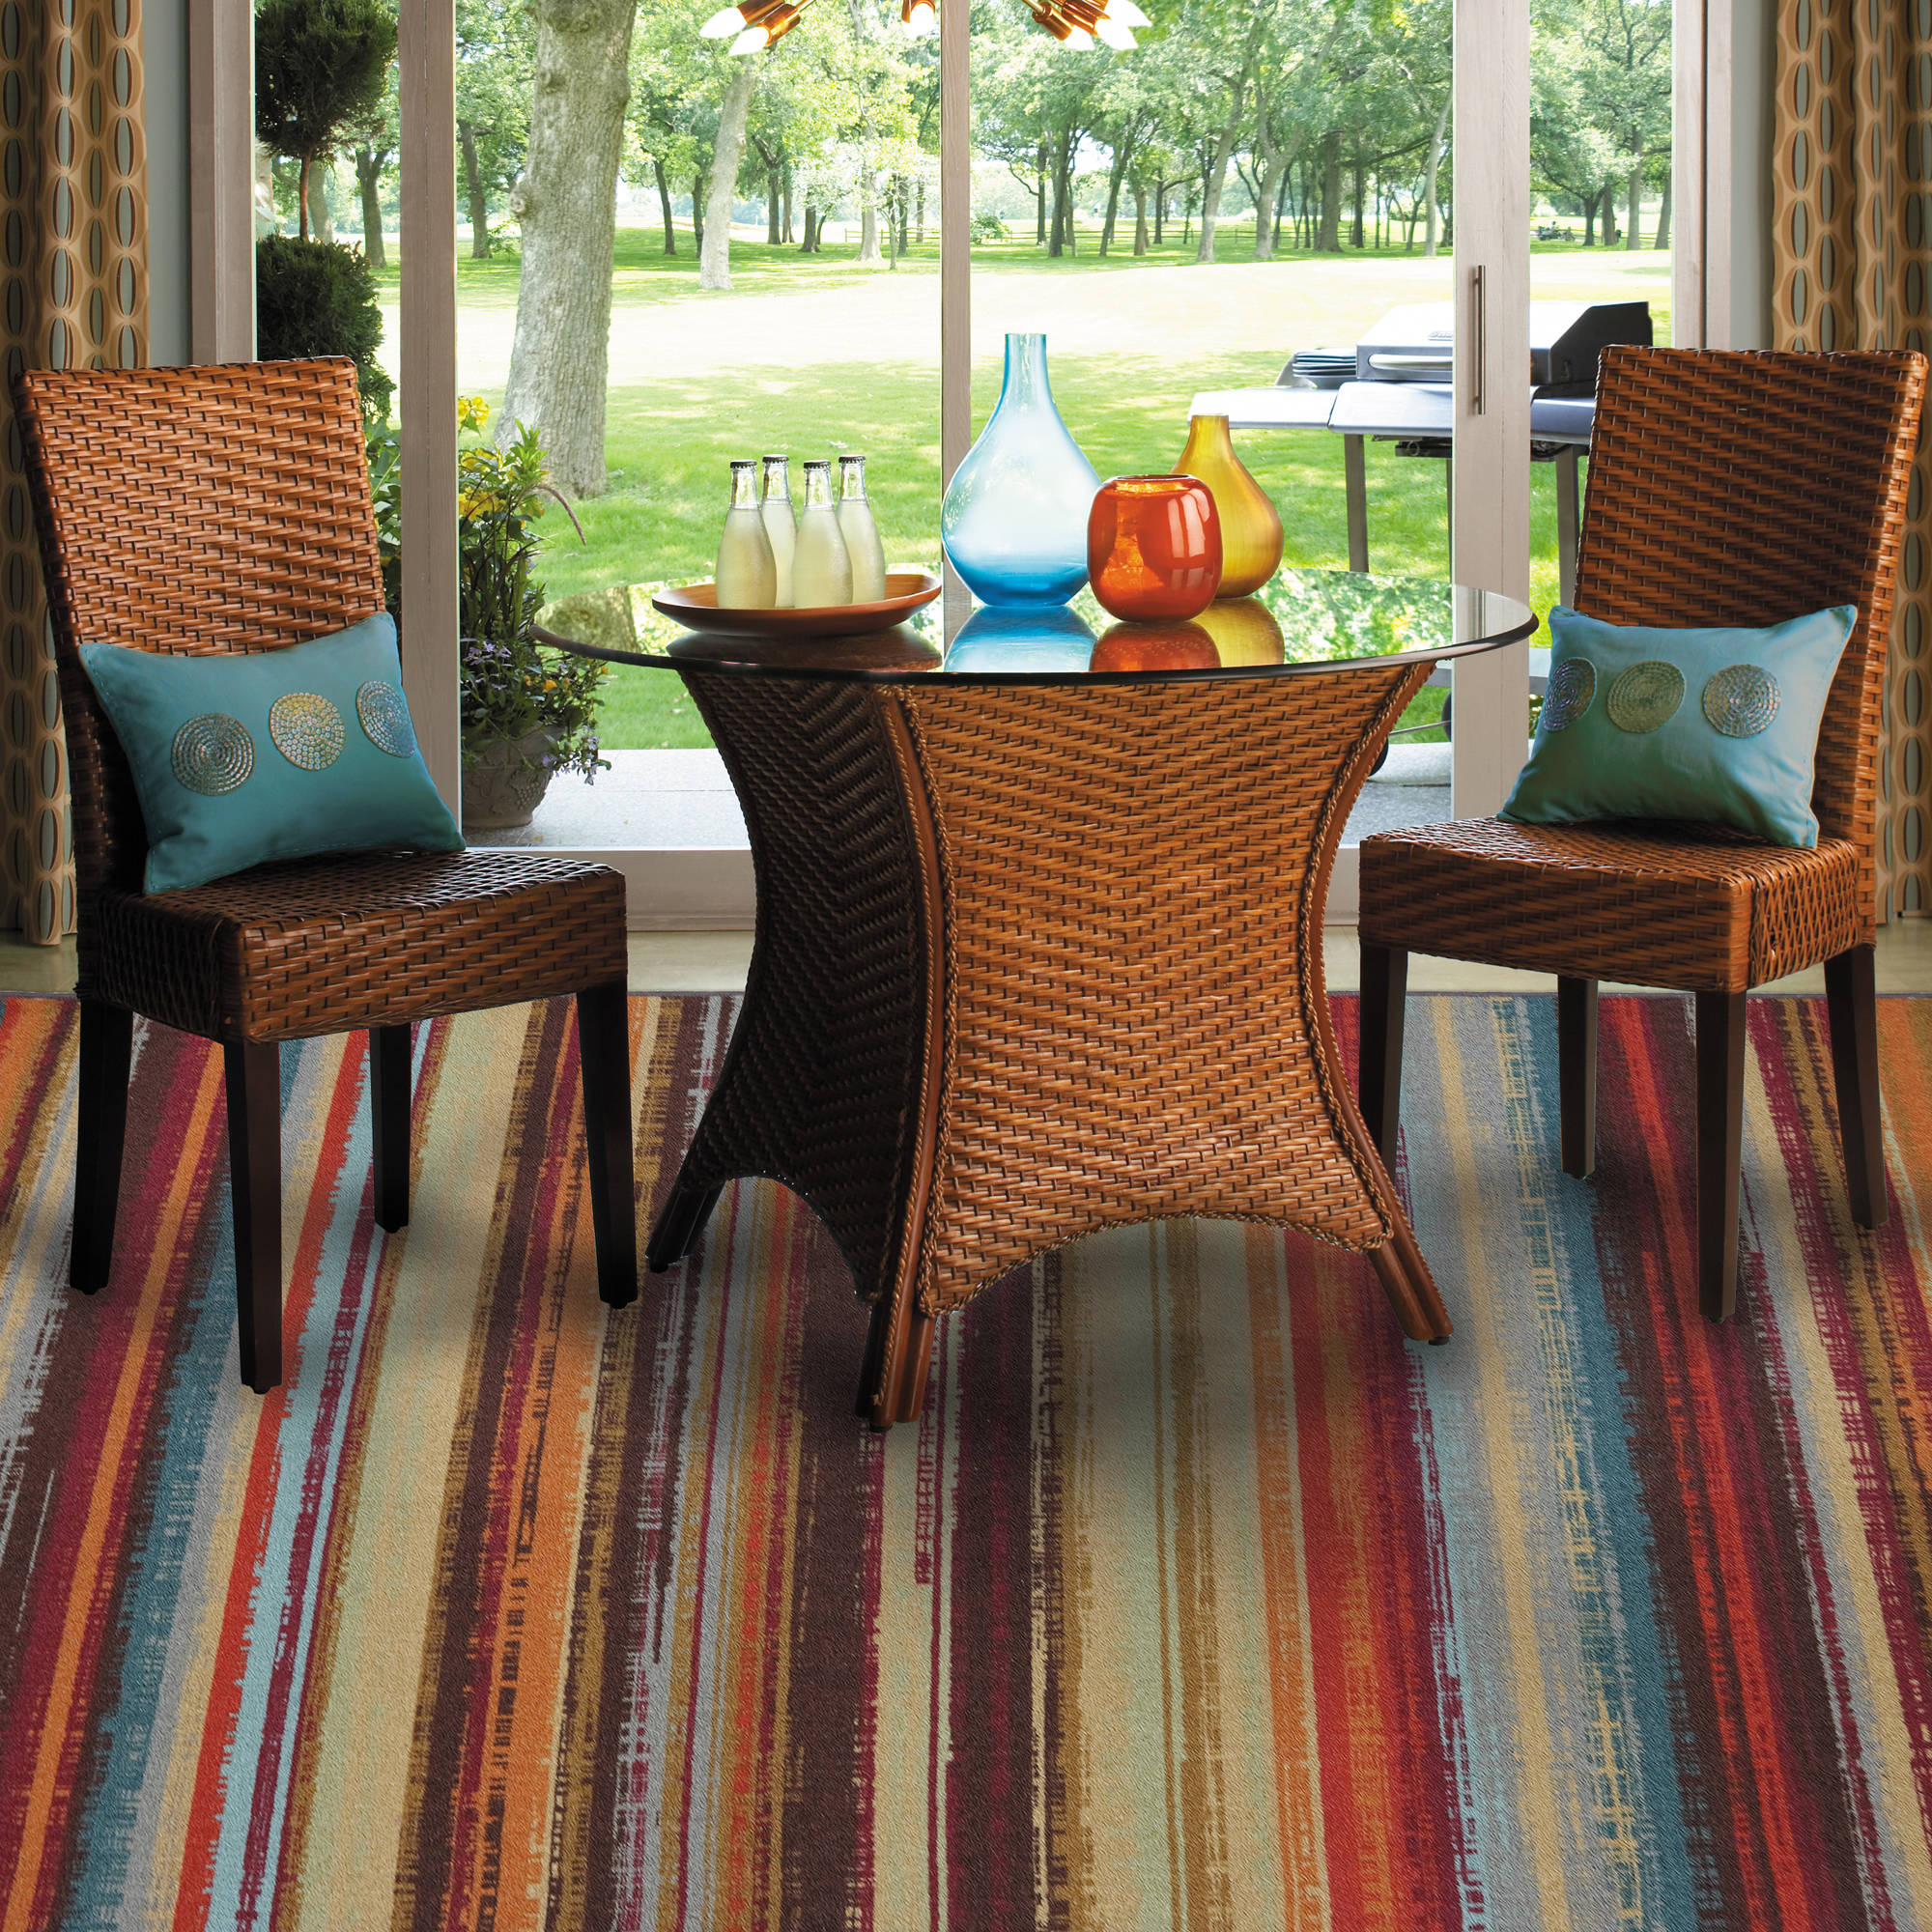 Mohawk Home Avenue Stripe Indoor/Outdoor Nylon Rug, Multi-Colored